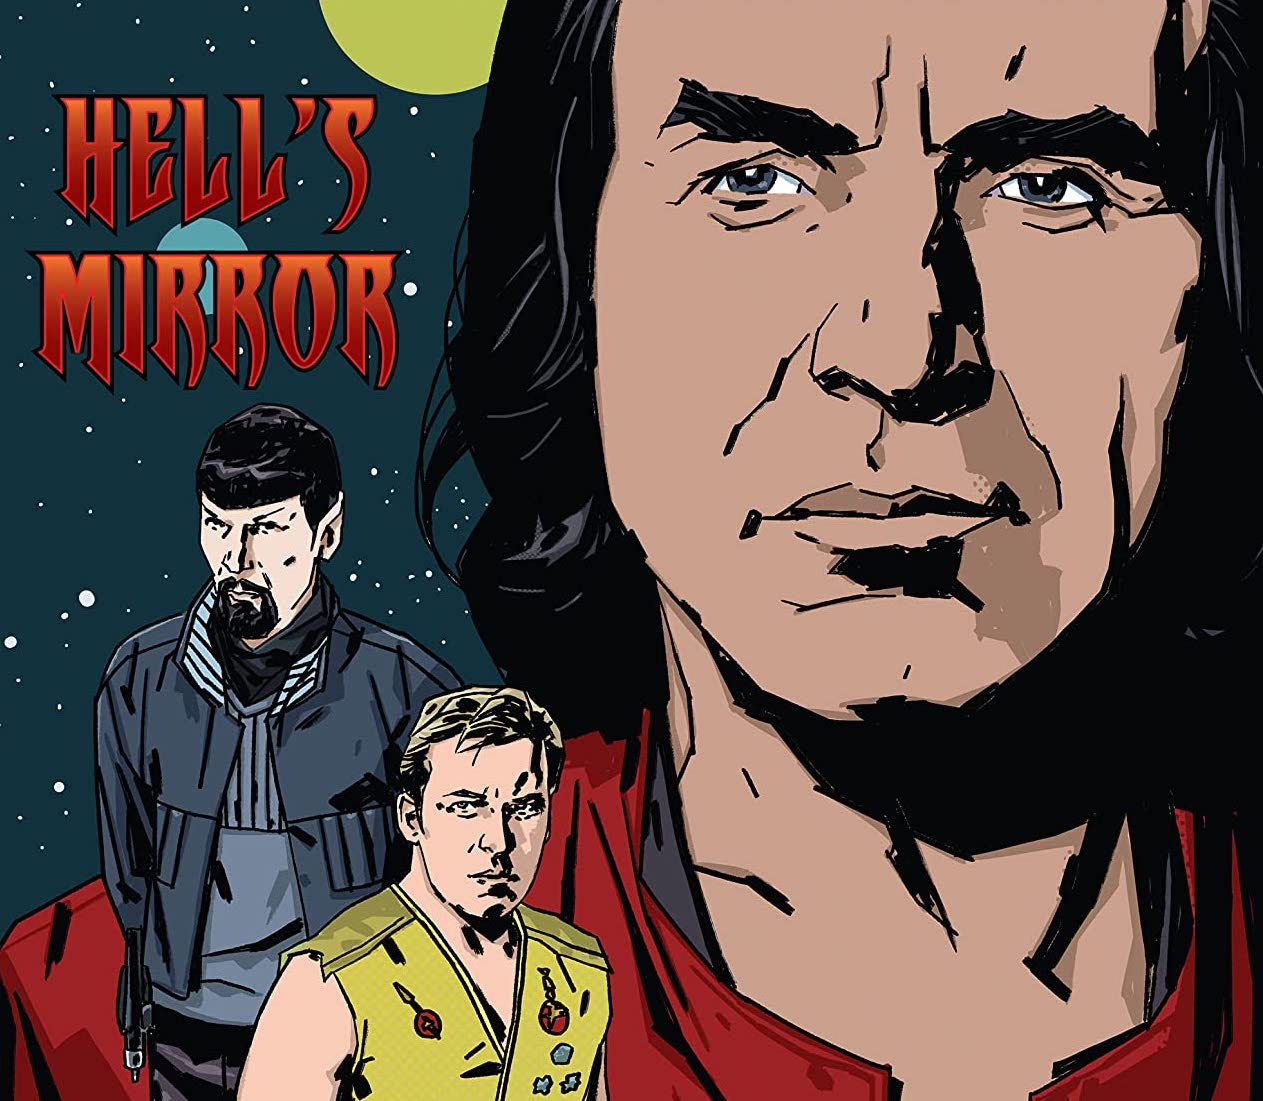 Star Trek: Hell's Mirror #1